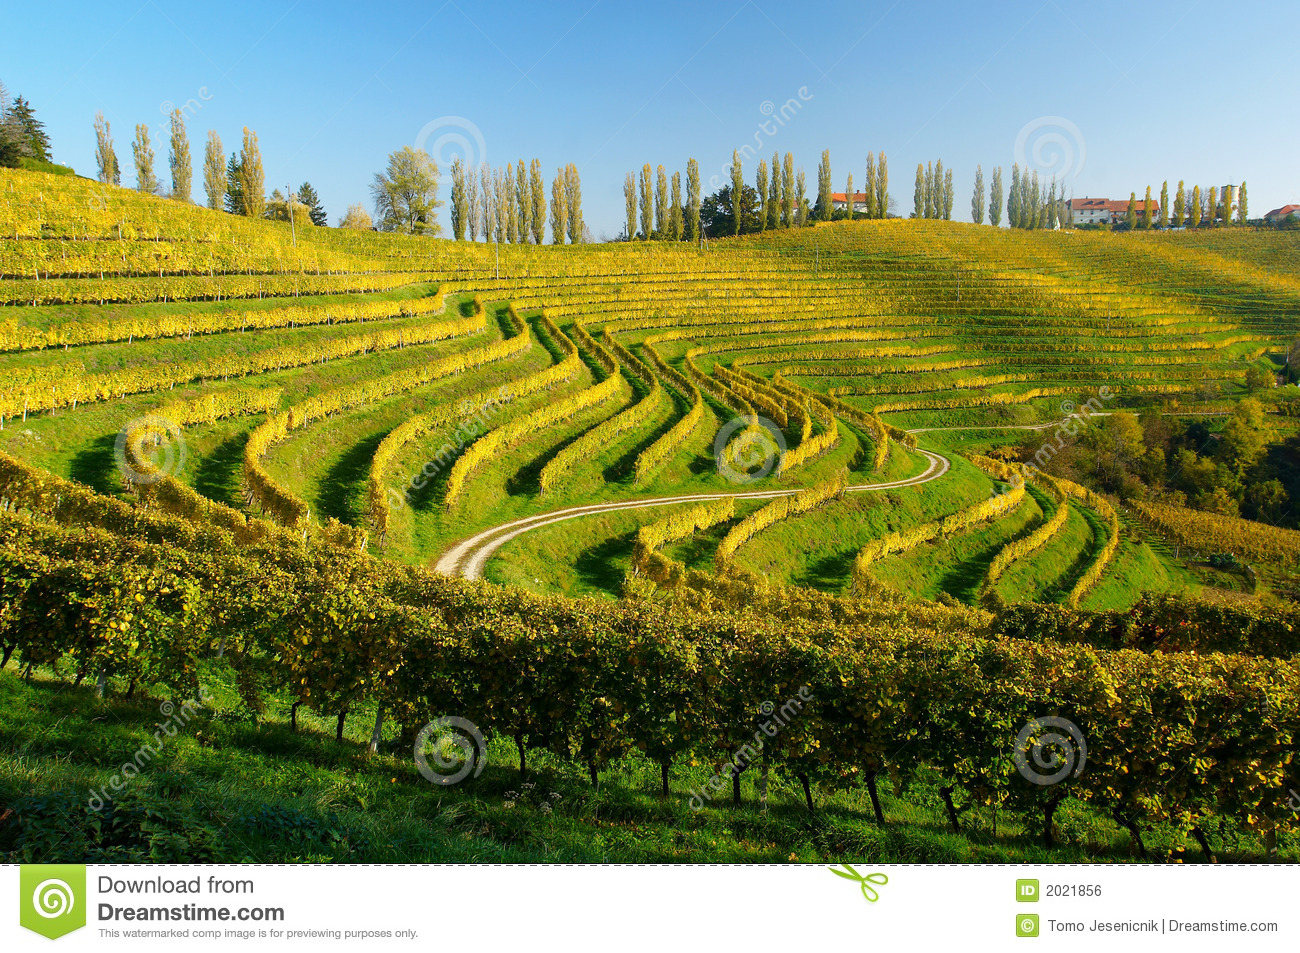 farming in south-east slovenia download